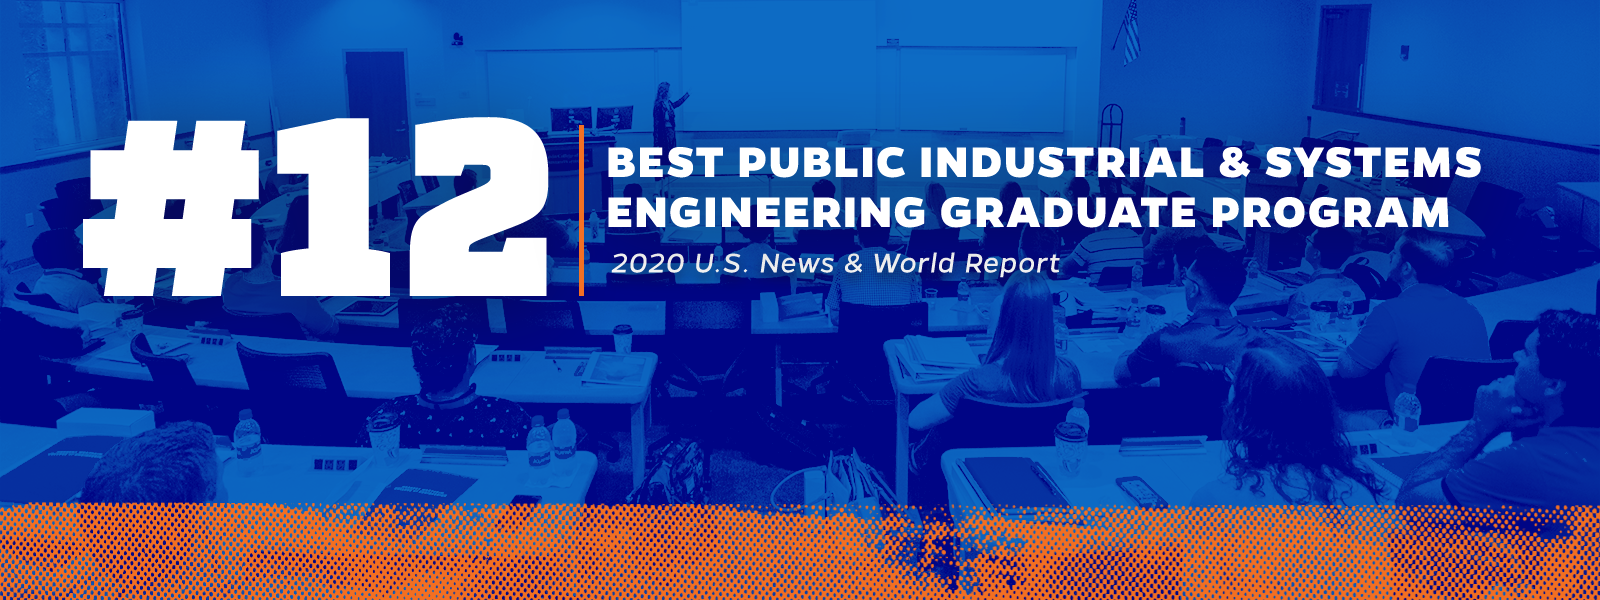 #12 | Best Public Industrial & Systems Engineering Graduate Program - 2020 U.S. News & World Report